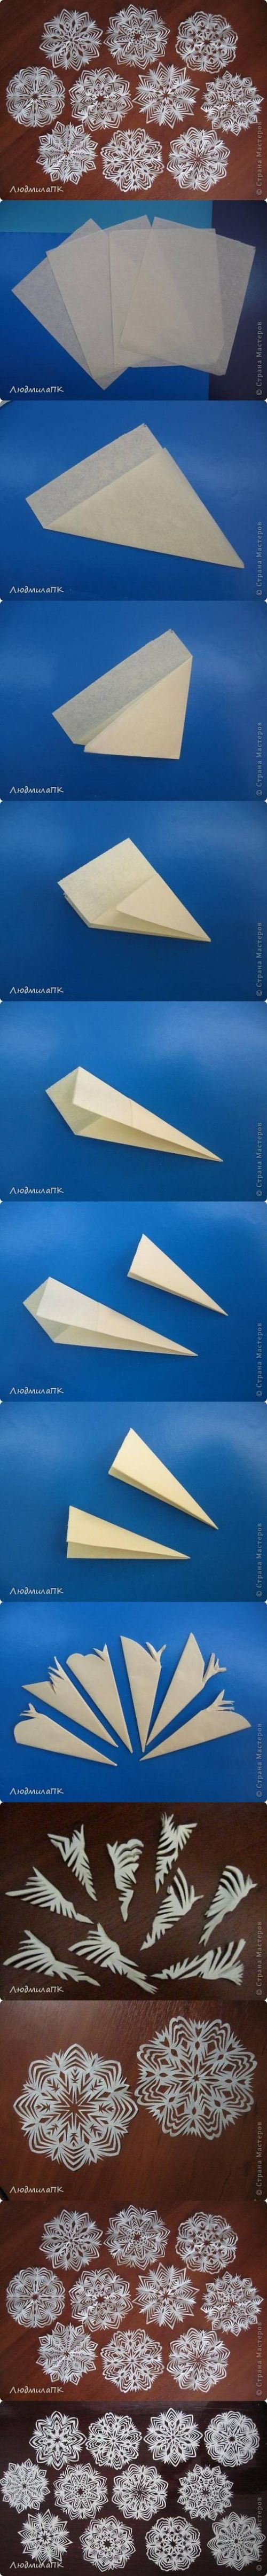 How to make Paper Snowflake Method step by step DIY tutorial instructions / How To Instructions